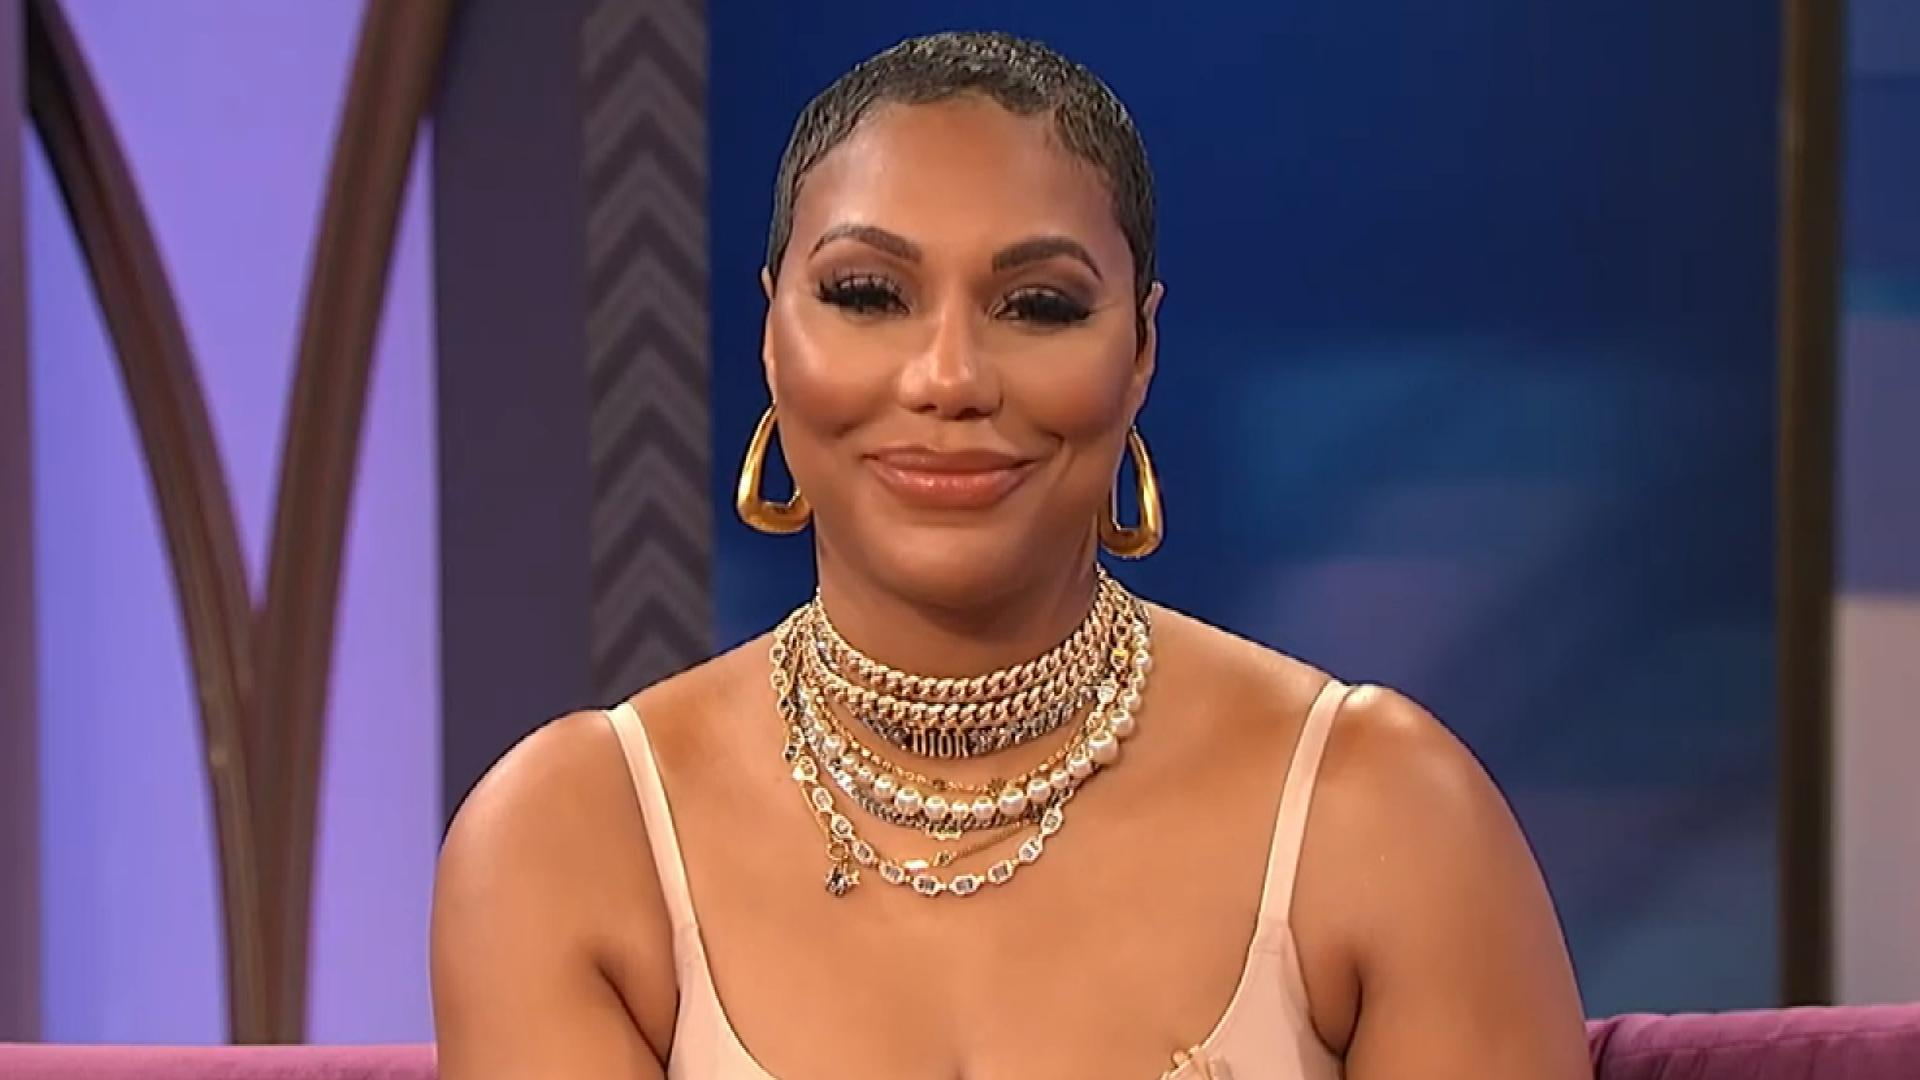 Tamar Braxton's Appearance On Wendy Williams' Show Blows Fans Away - She Is Wearing Nothing But Spanks!